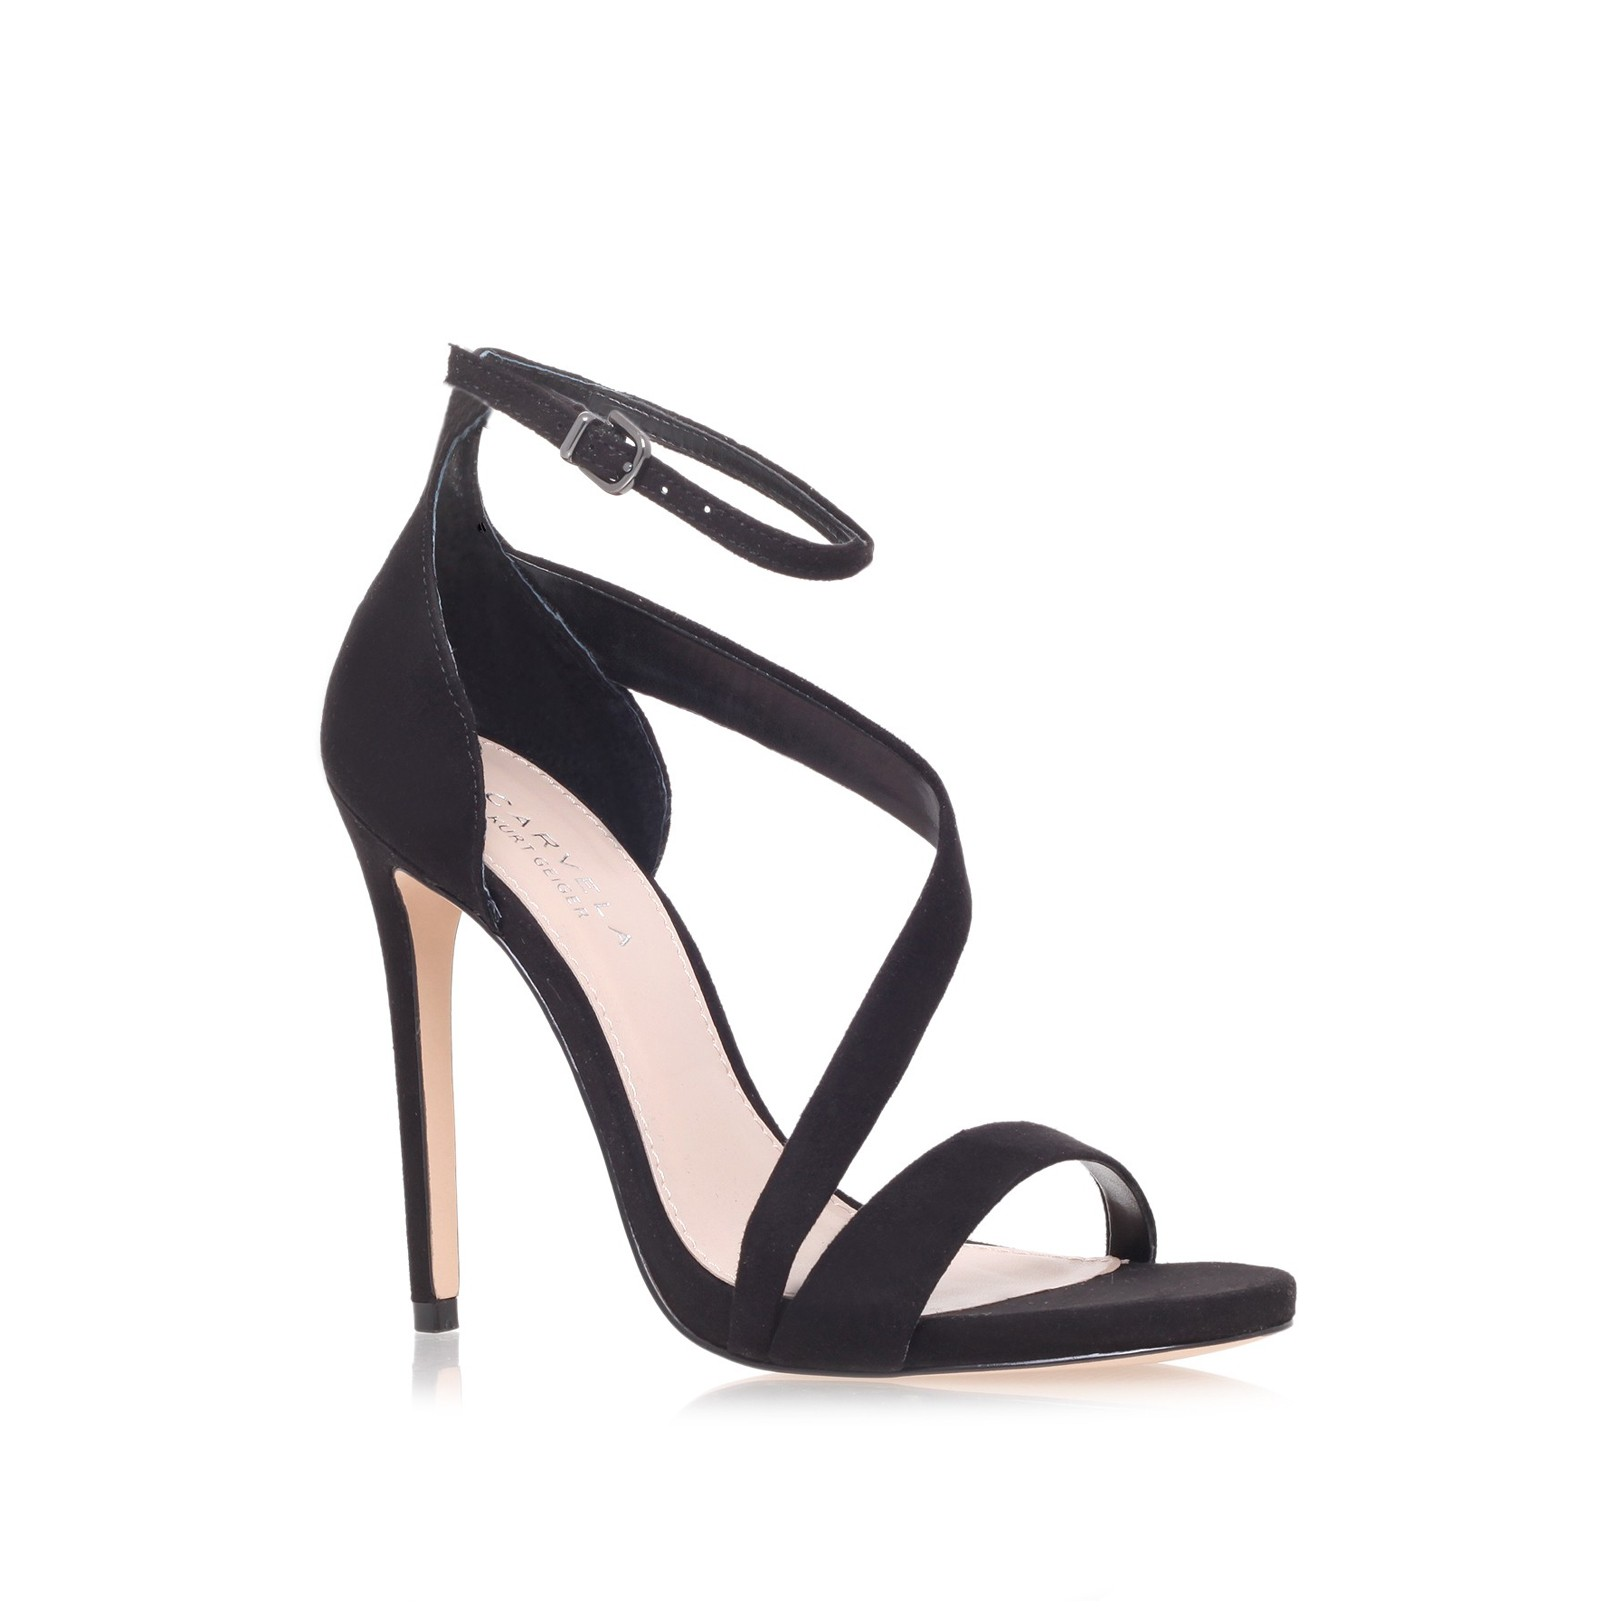 Gosh black mid heel sandals by carvela kurt geiger kurt geiger